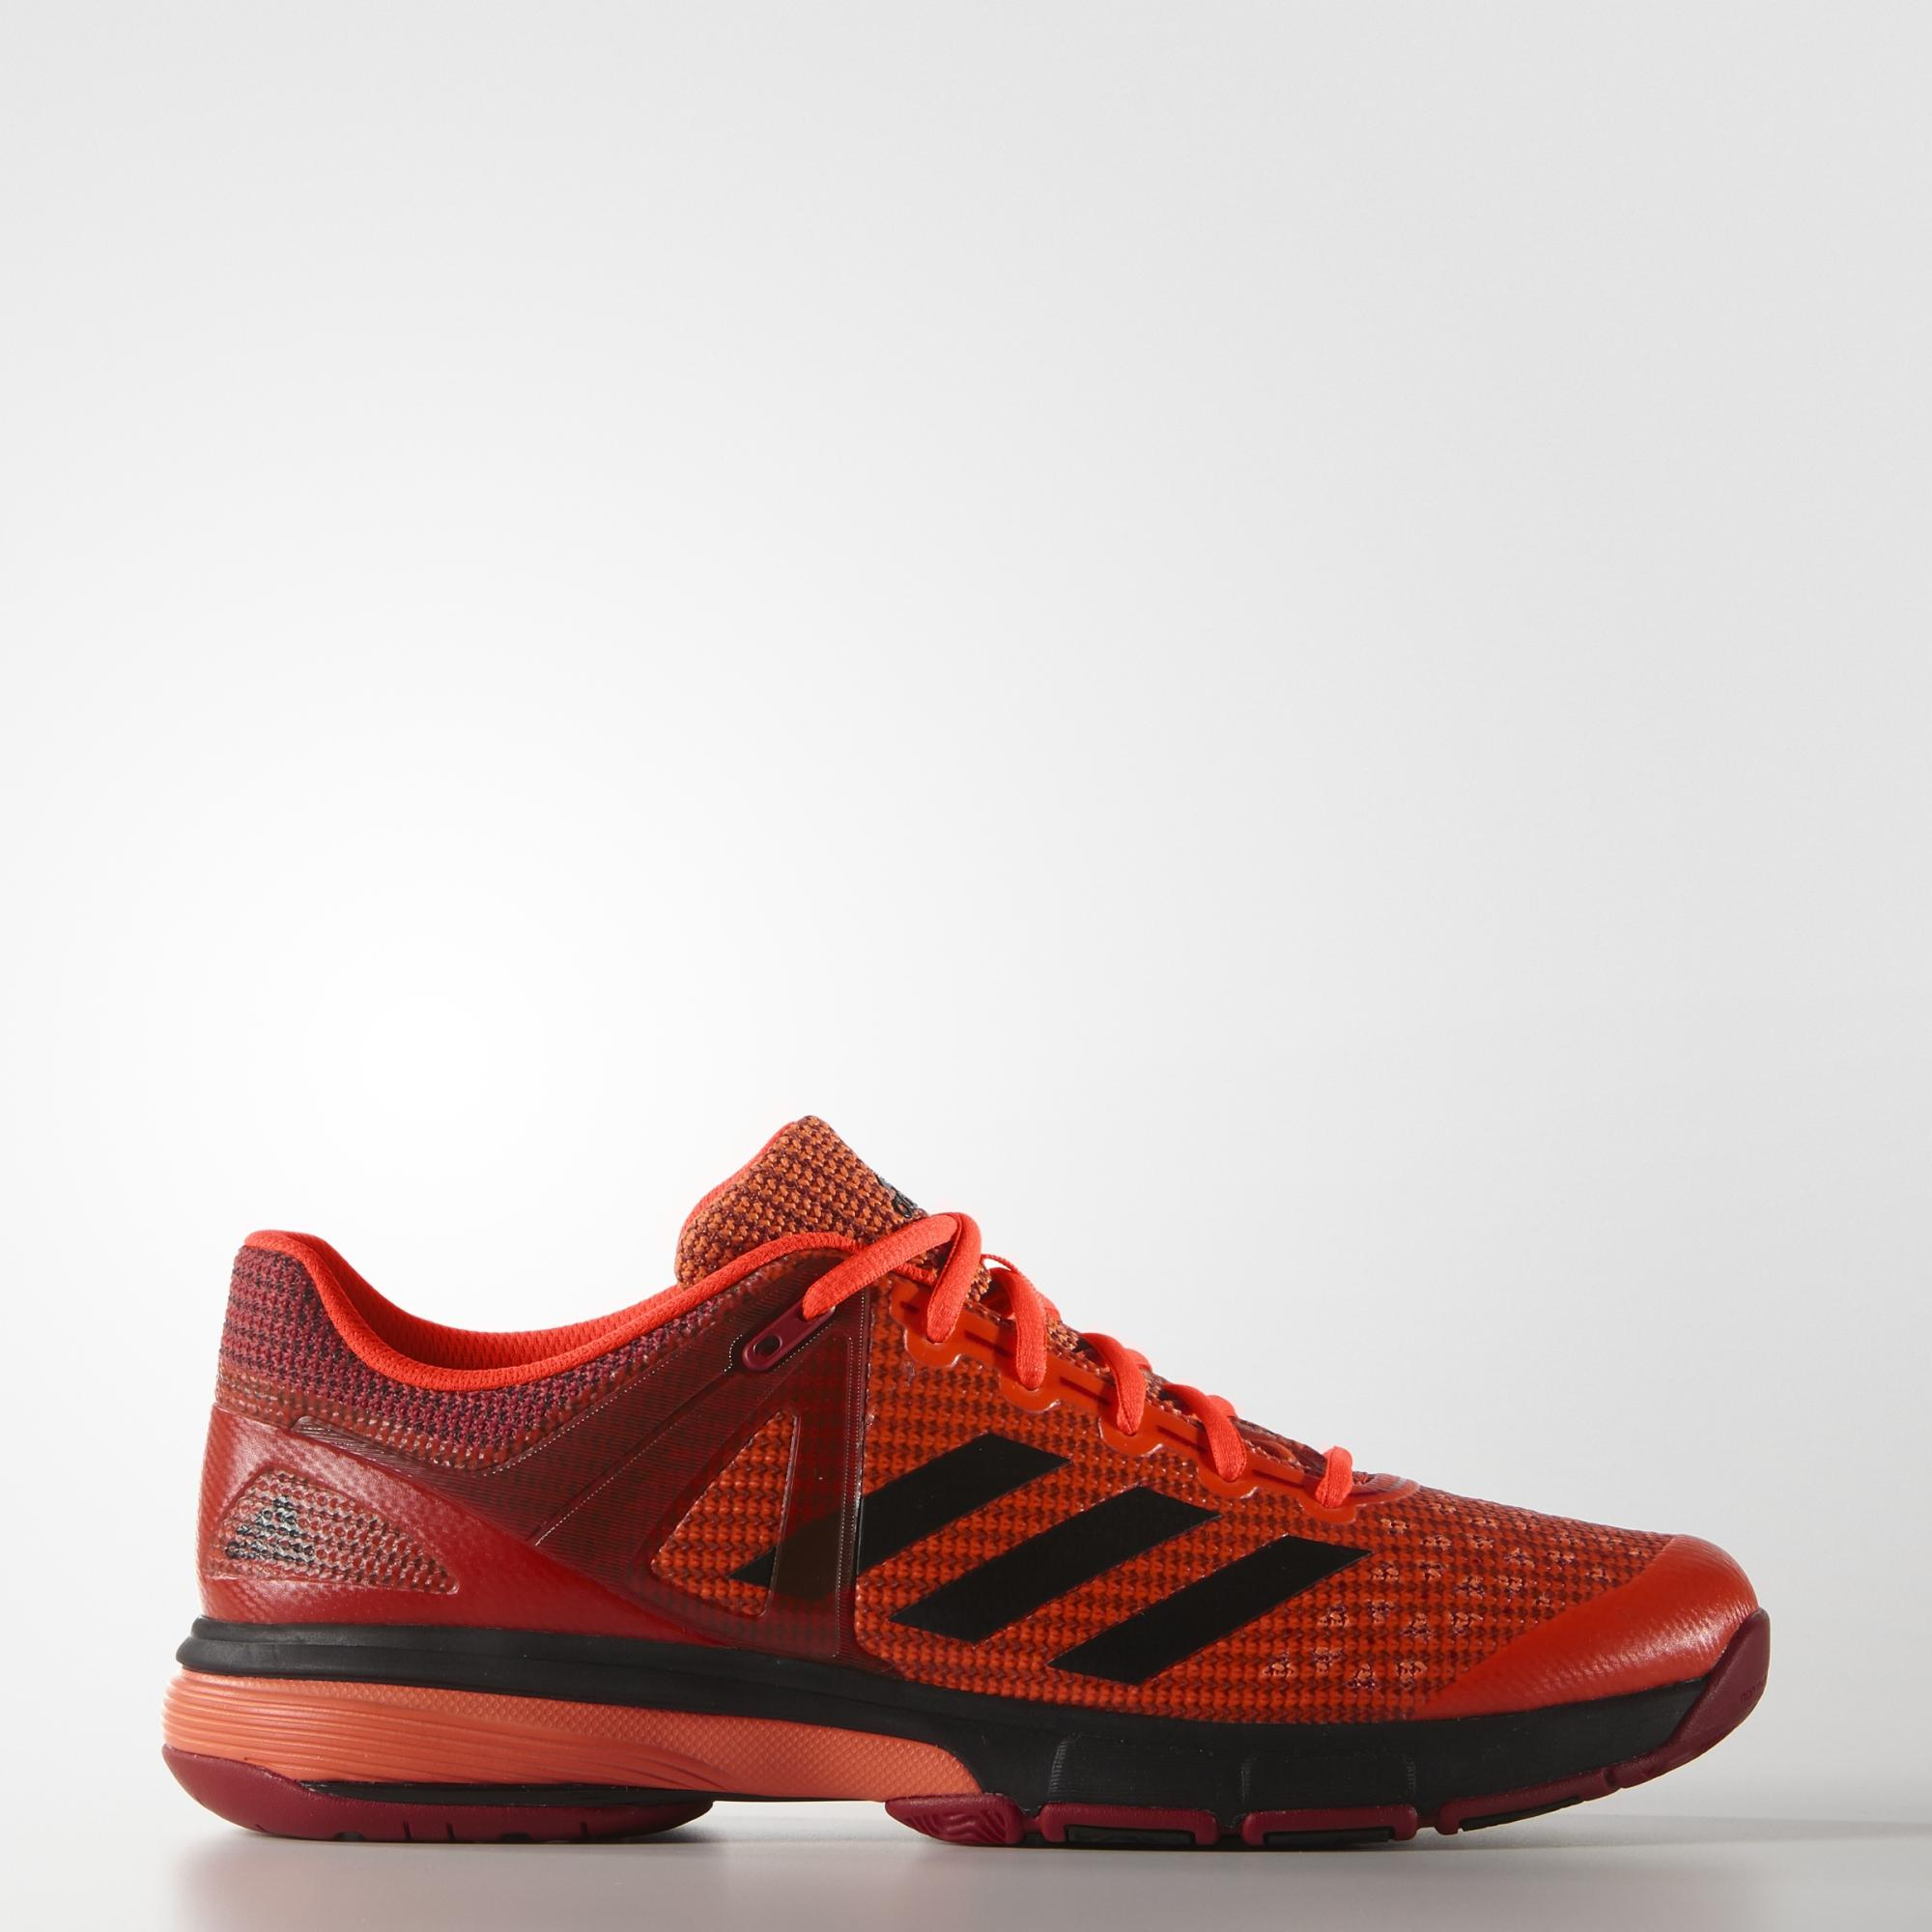 Adidas Mens Court Stabil 13 Indoor Shoes - Red